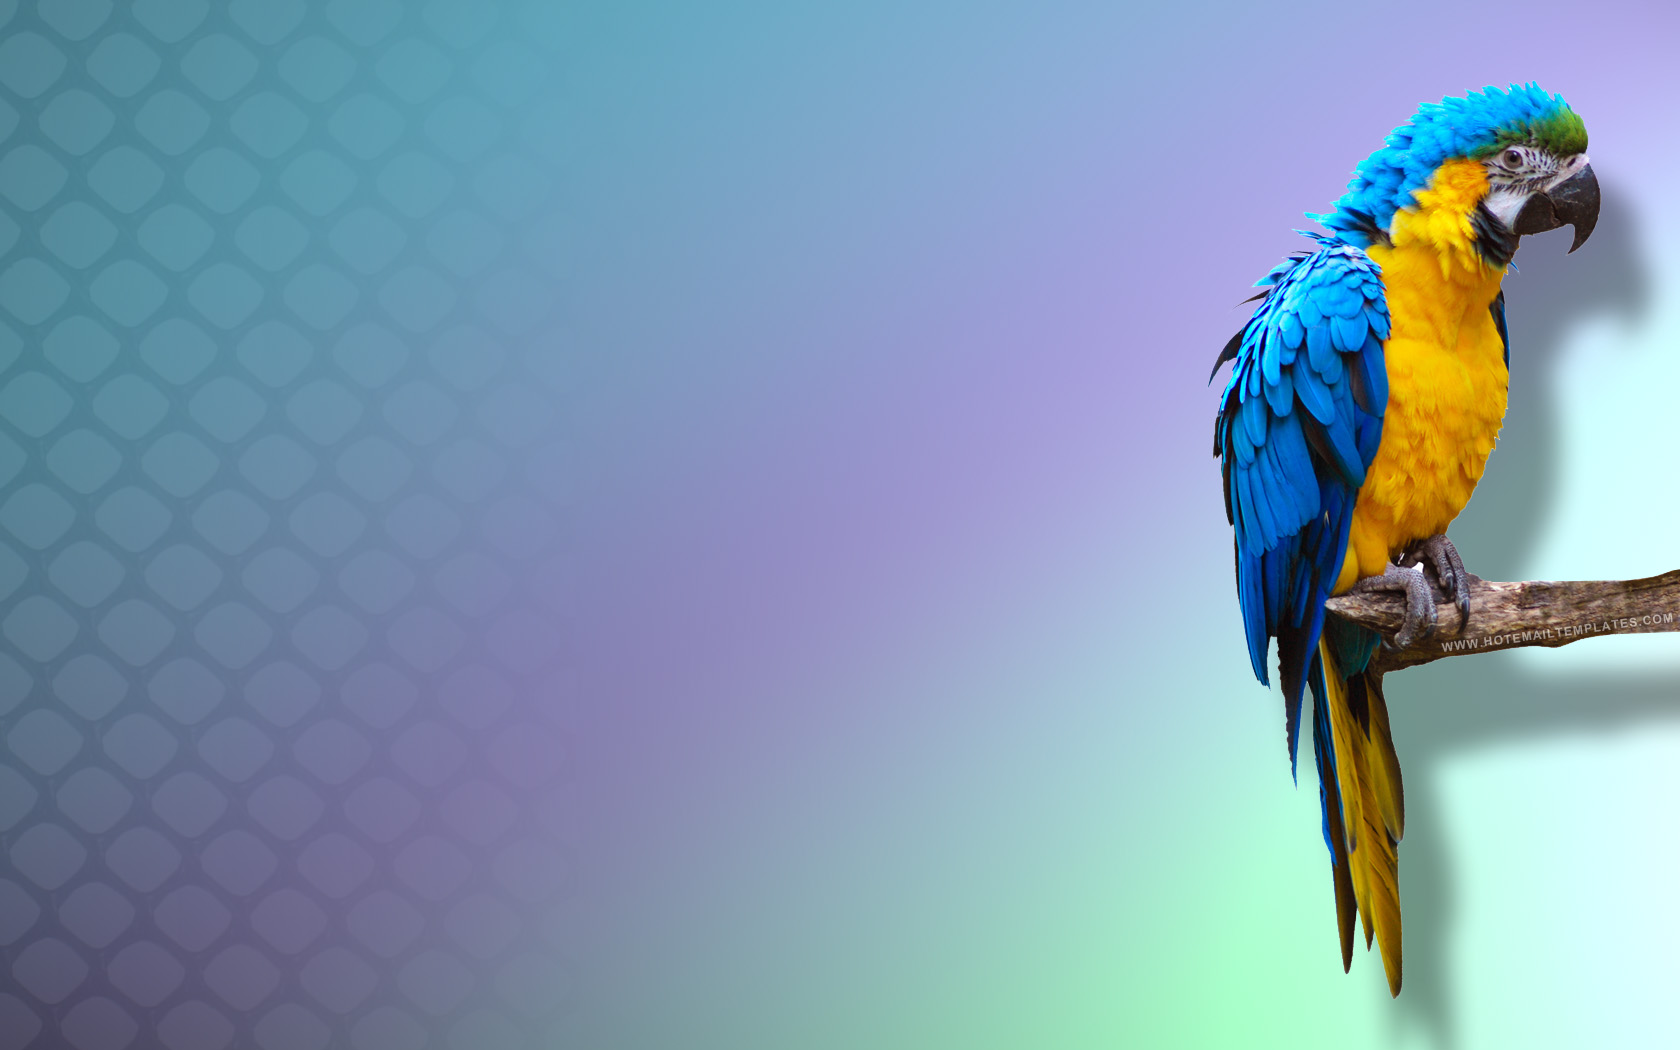 free hd parrot image